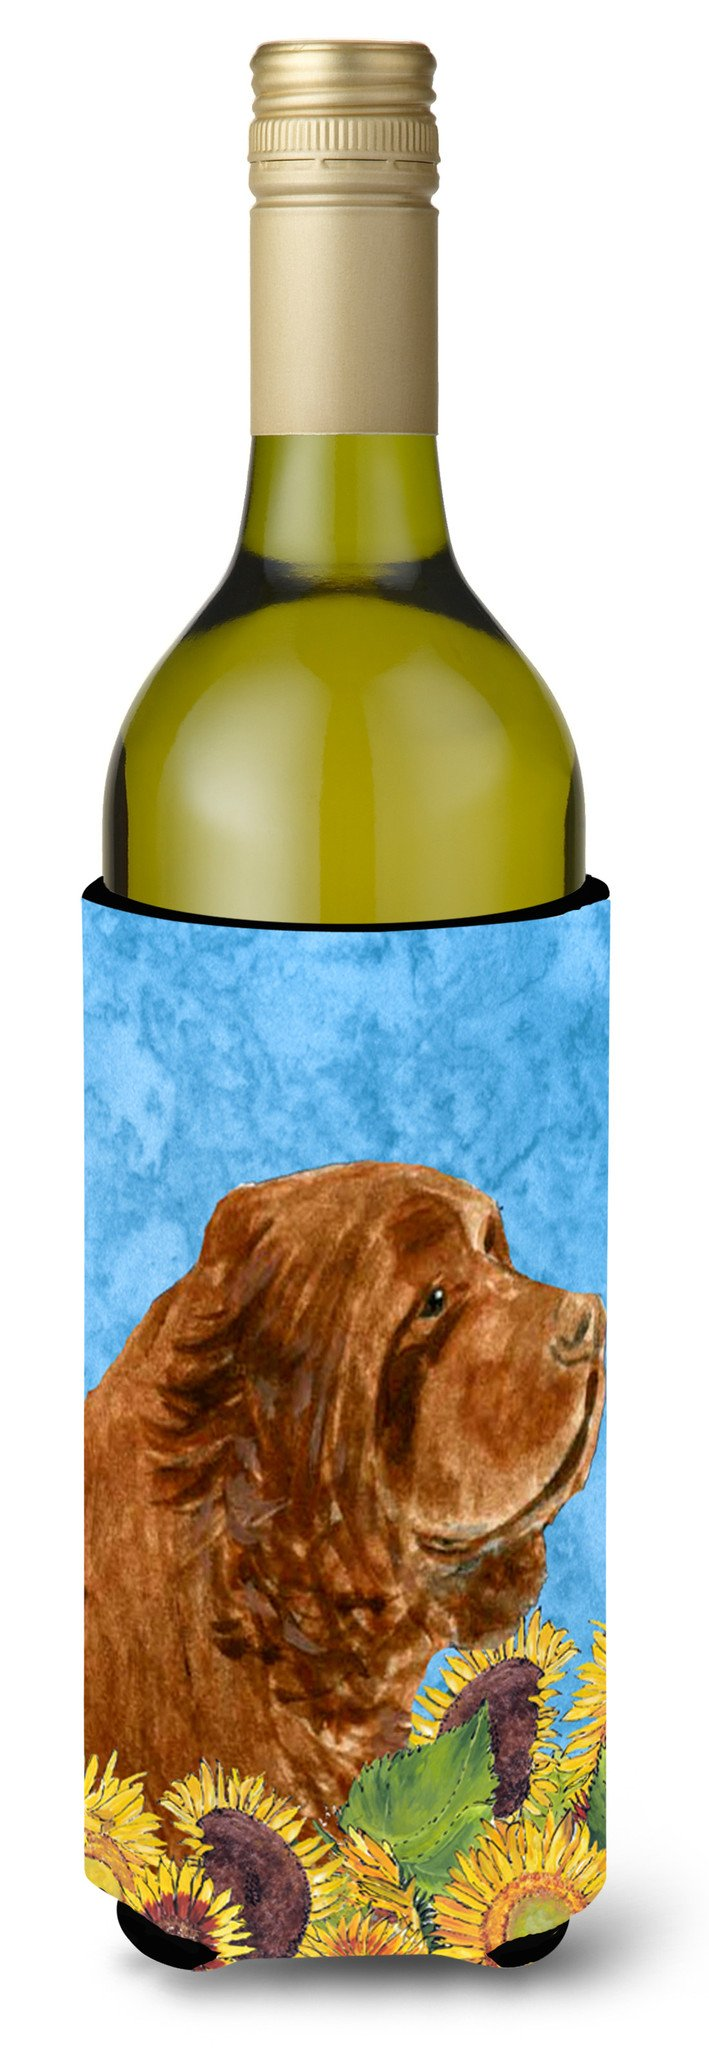 Sussex Spaniel in Summer Flowers Wine Bottle Beverage Insulator Beverage Insulator Hugger by Caroline's Treasures